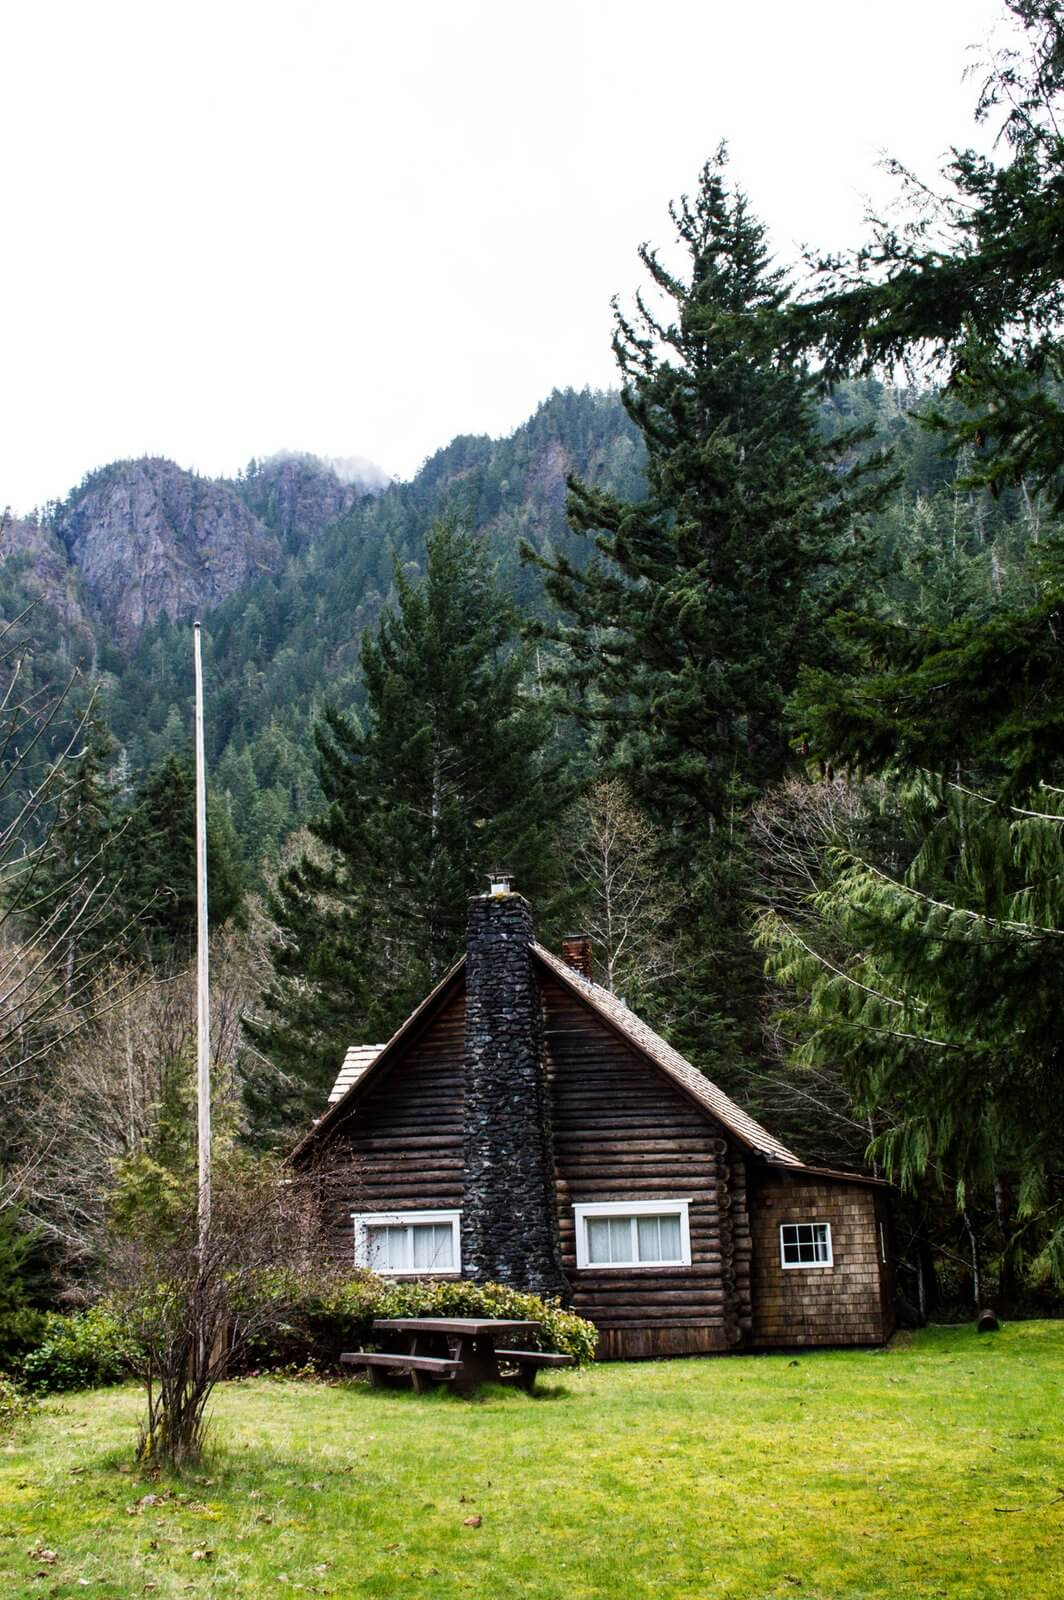 One Day in Olympic National Park